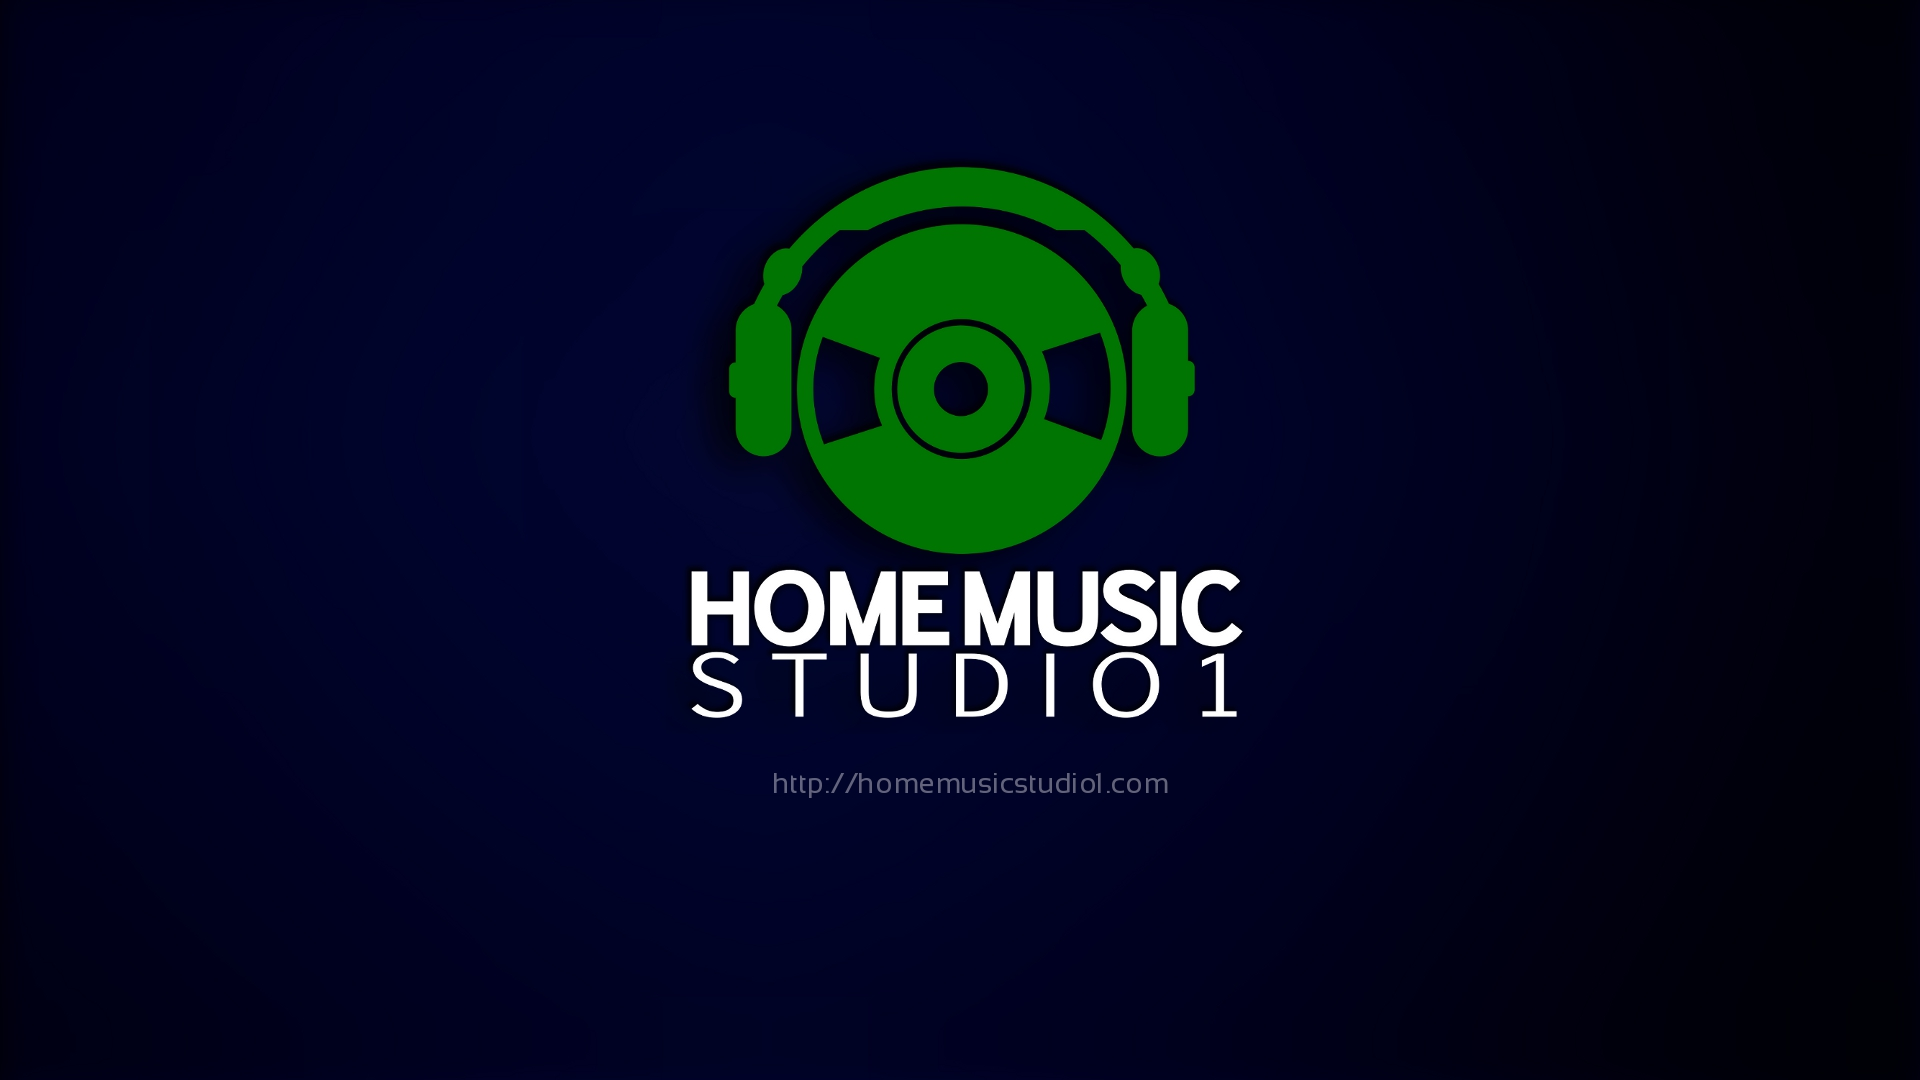 Home Music Studio 1 Wallpapers 1920x1080